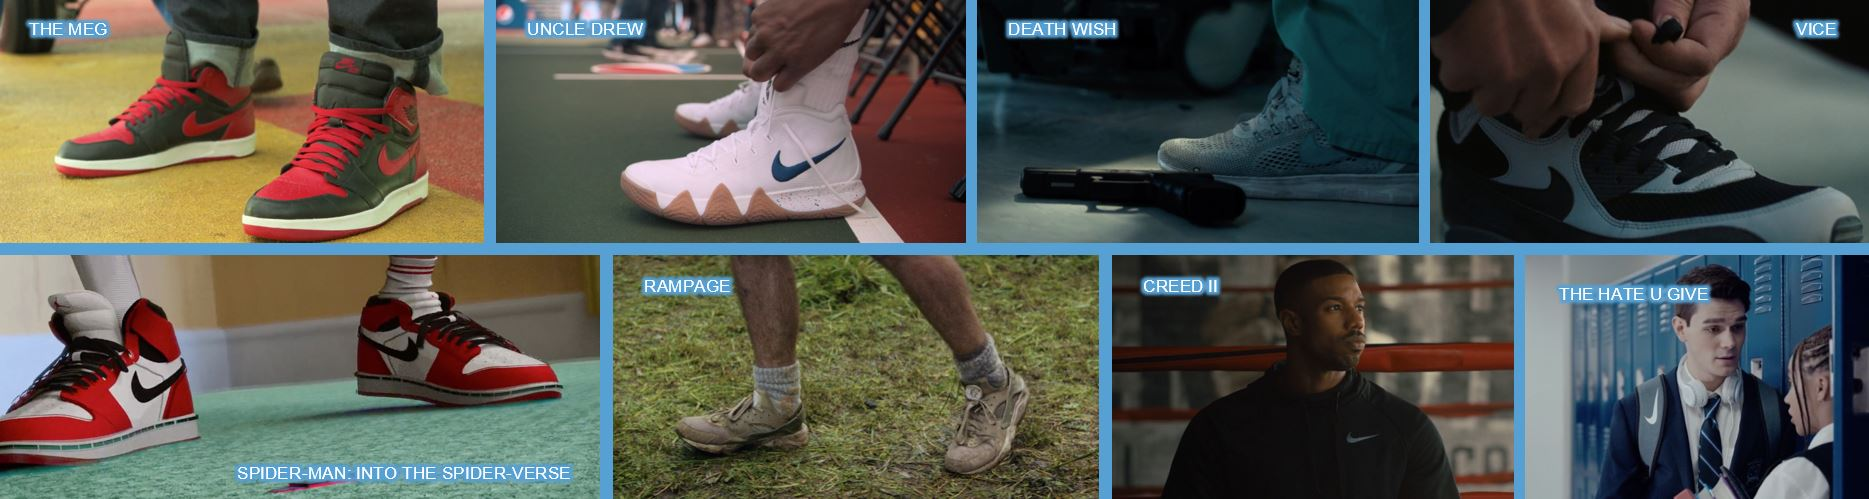 Nike concave brand tracking product placement top 10 brands in 2018 movies branded entertainment brand integration shoes spiderman spider-man into the spiderverse spider-verse the meg uncle drew death wish vice rampage Creed II creed 2 the hate u give